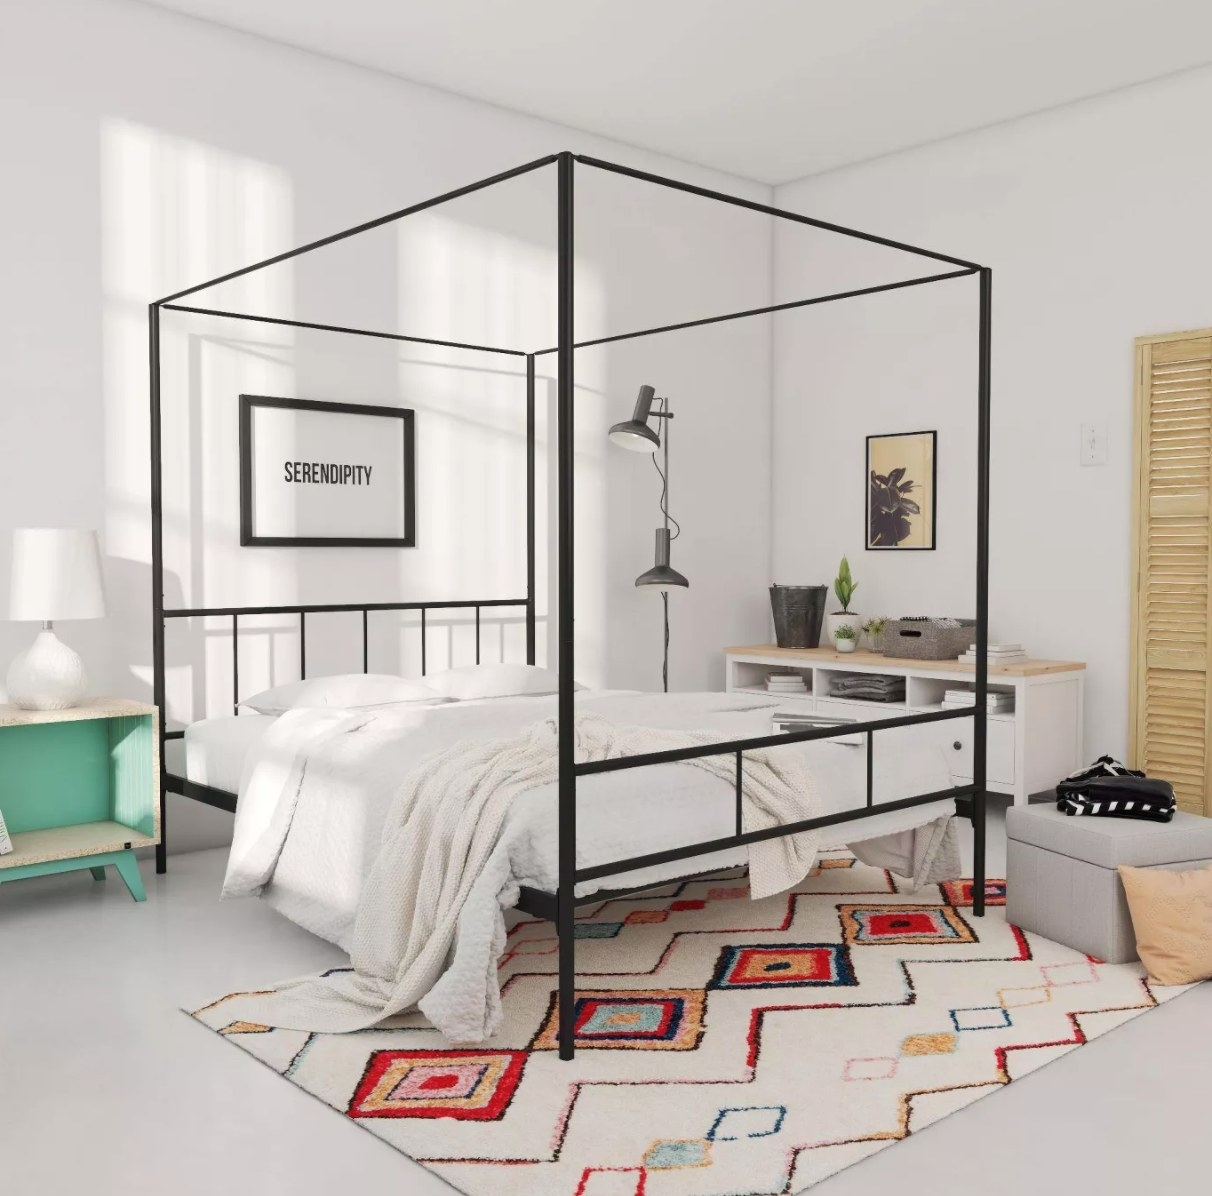 a bed frame with a black metal canopy built around it